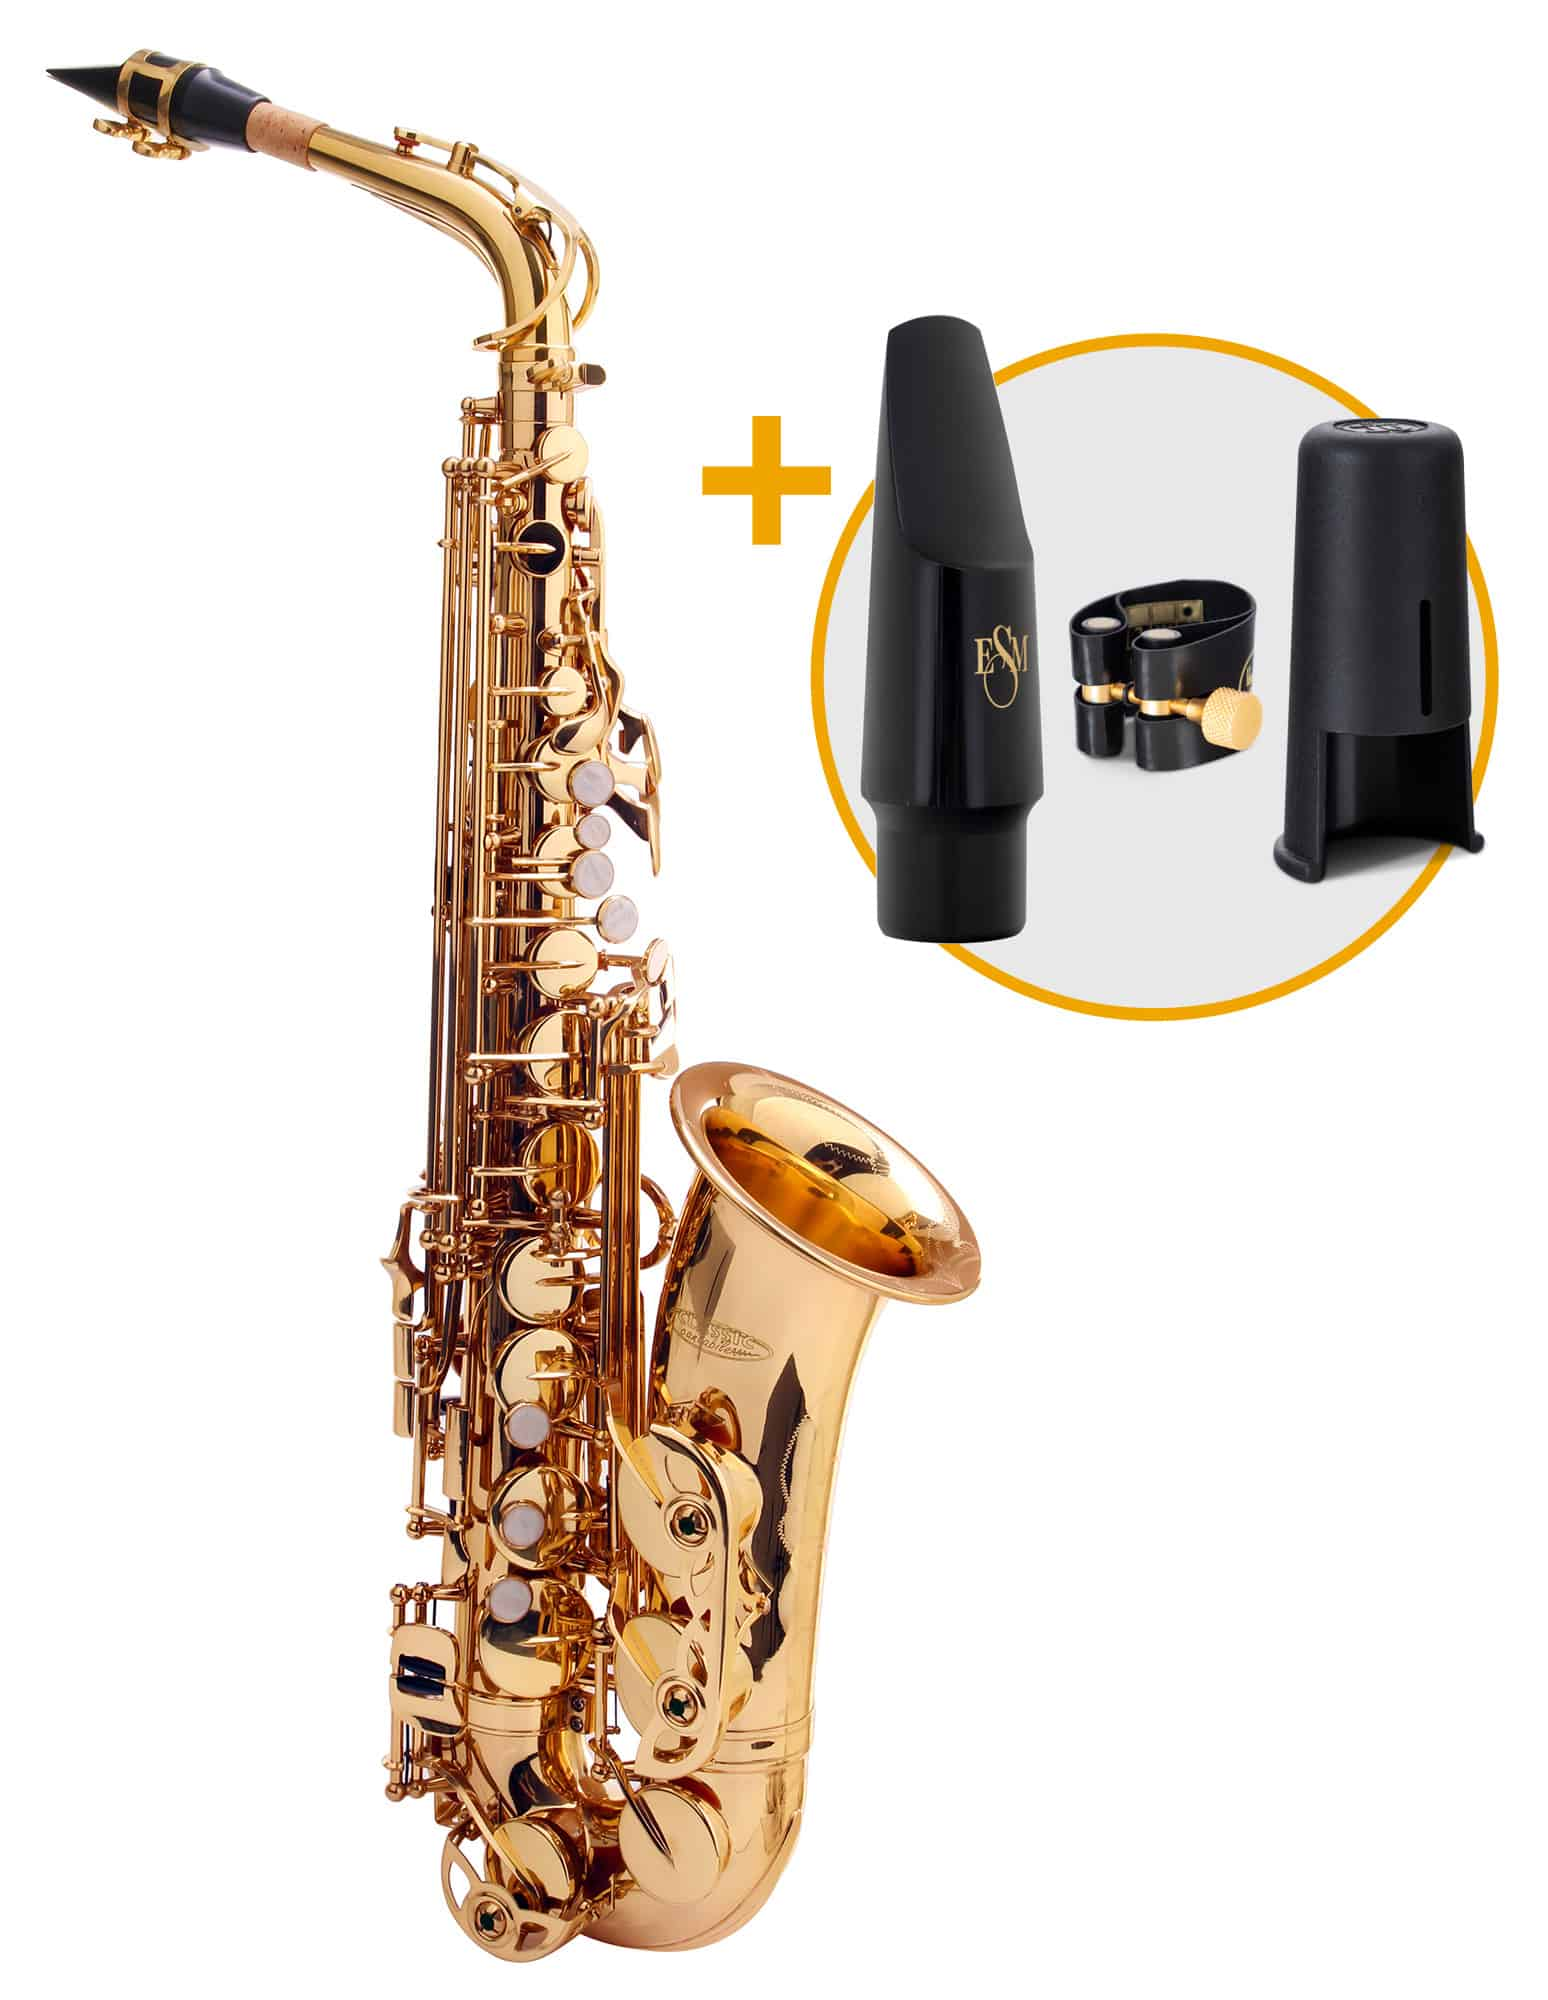 Saxophone - Classic Cantabile Winds AS 450 Es Altsaxophon ESM Set - Onlineshop Musikhaus Kirstein